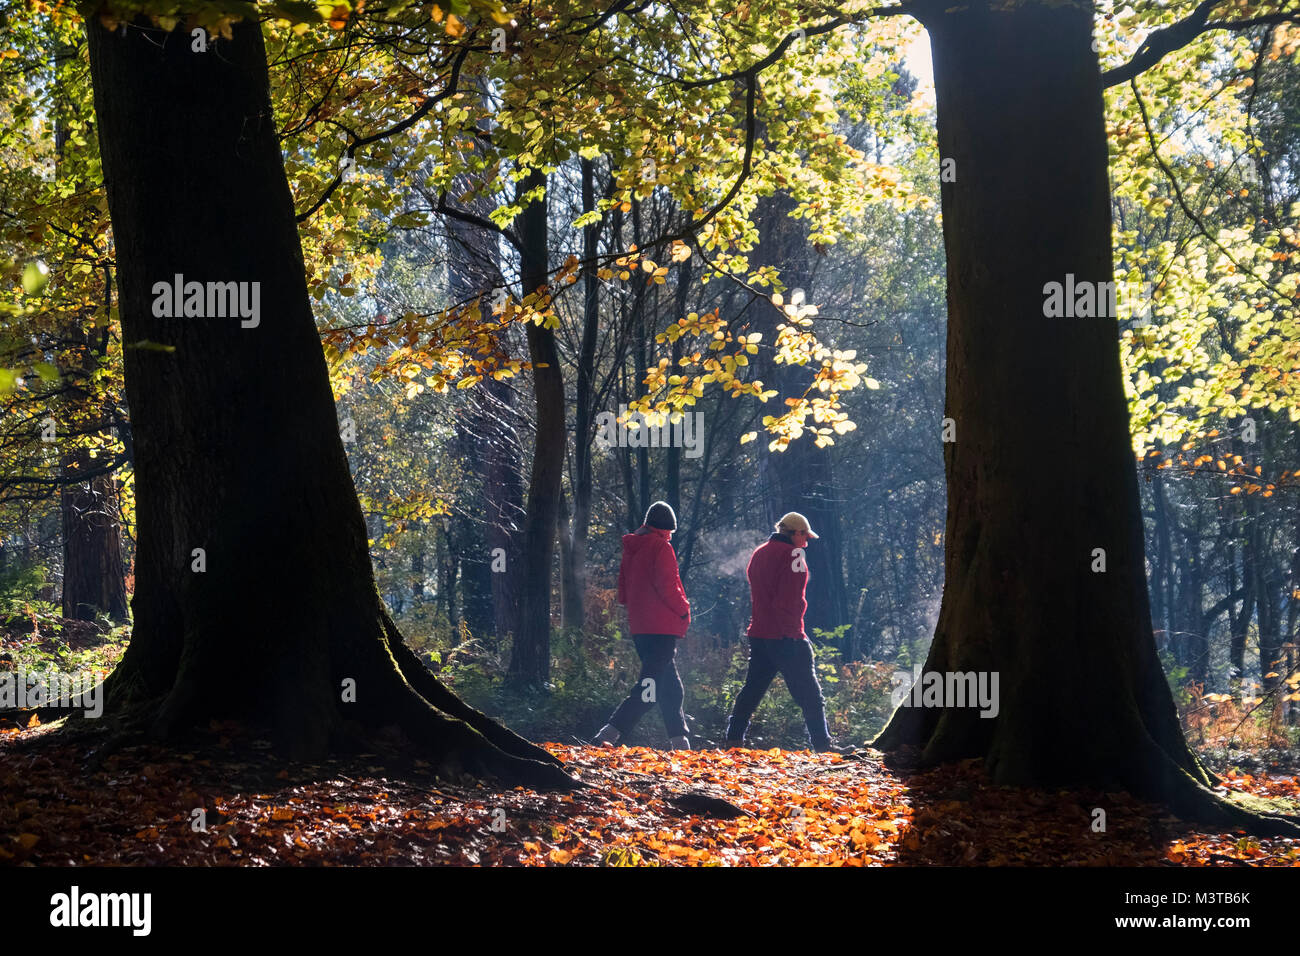 Autumn Walk, Delamere Forest, Delamere, Cheshire, England, UK - Stock Image